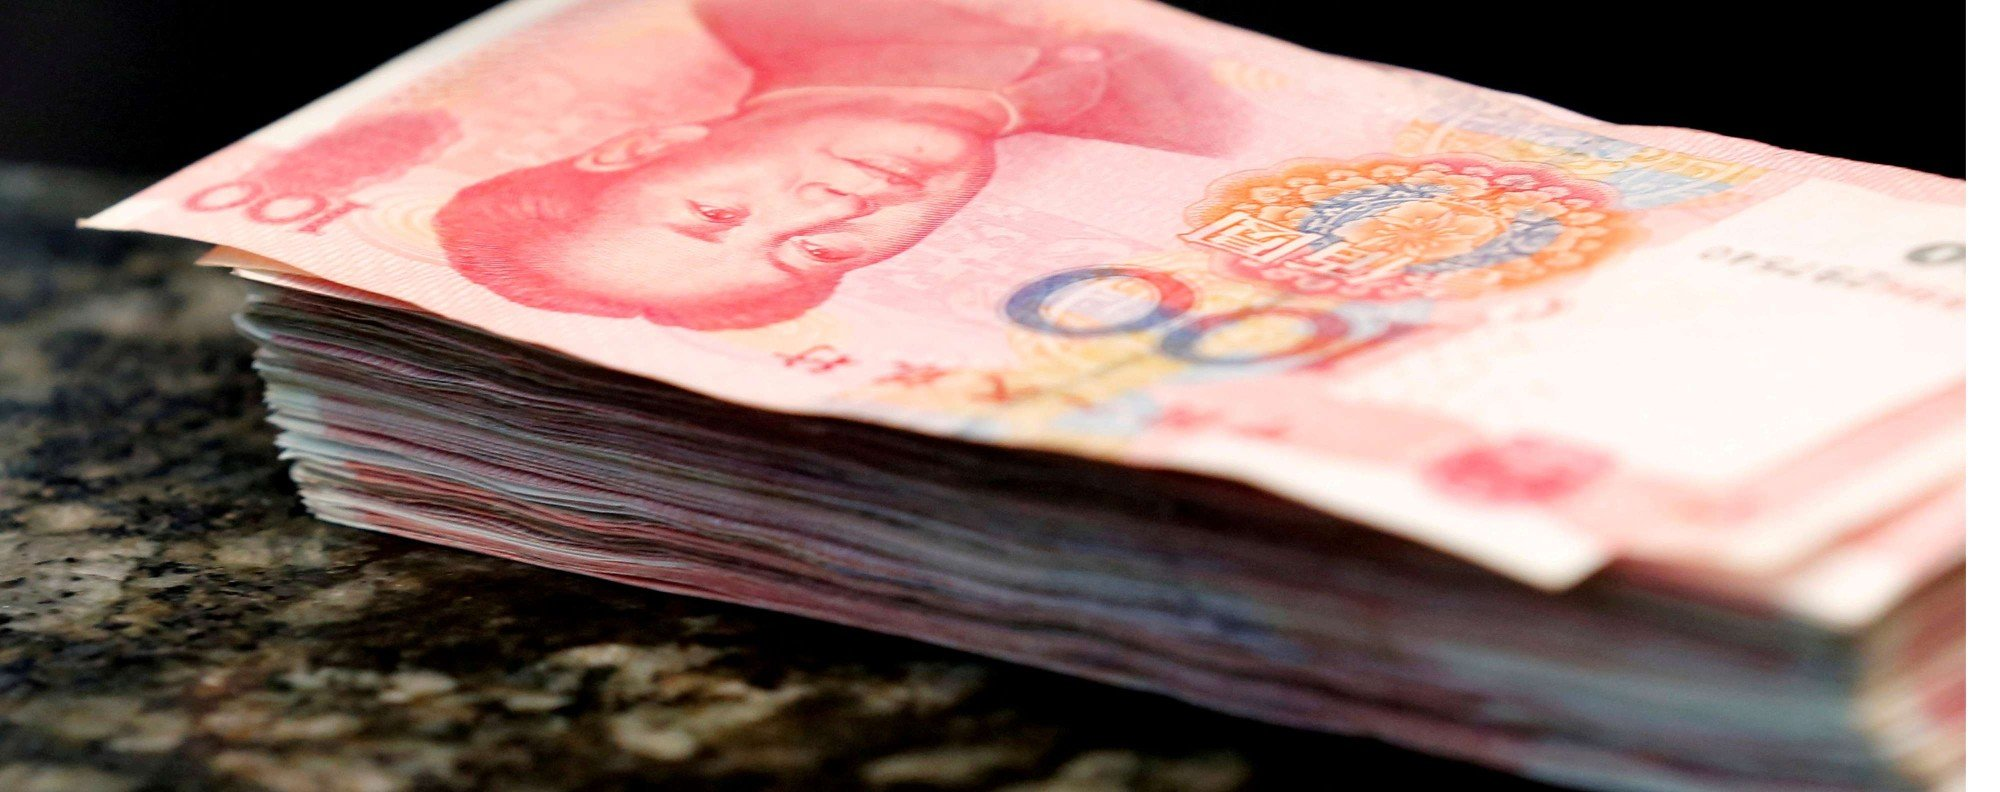 100 yuan banknotes. Photo: Reuters